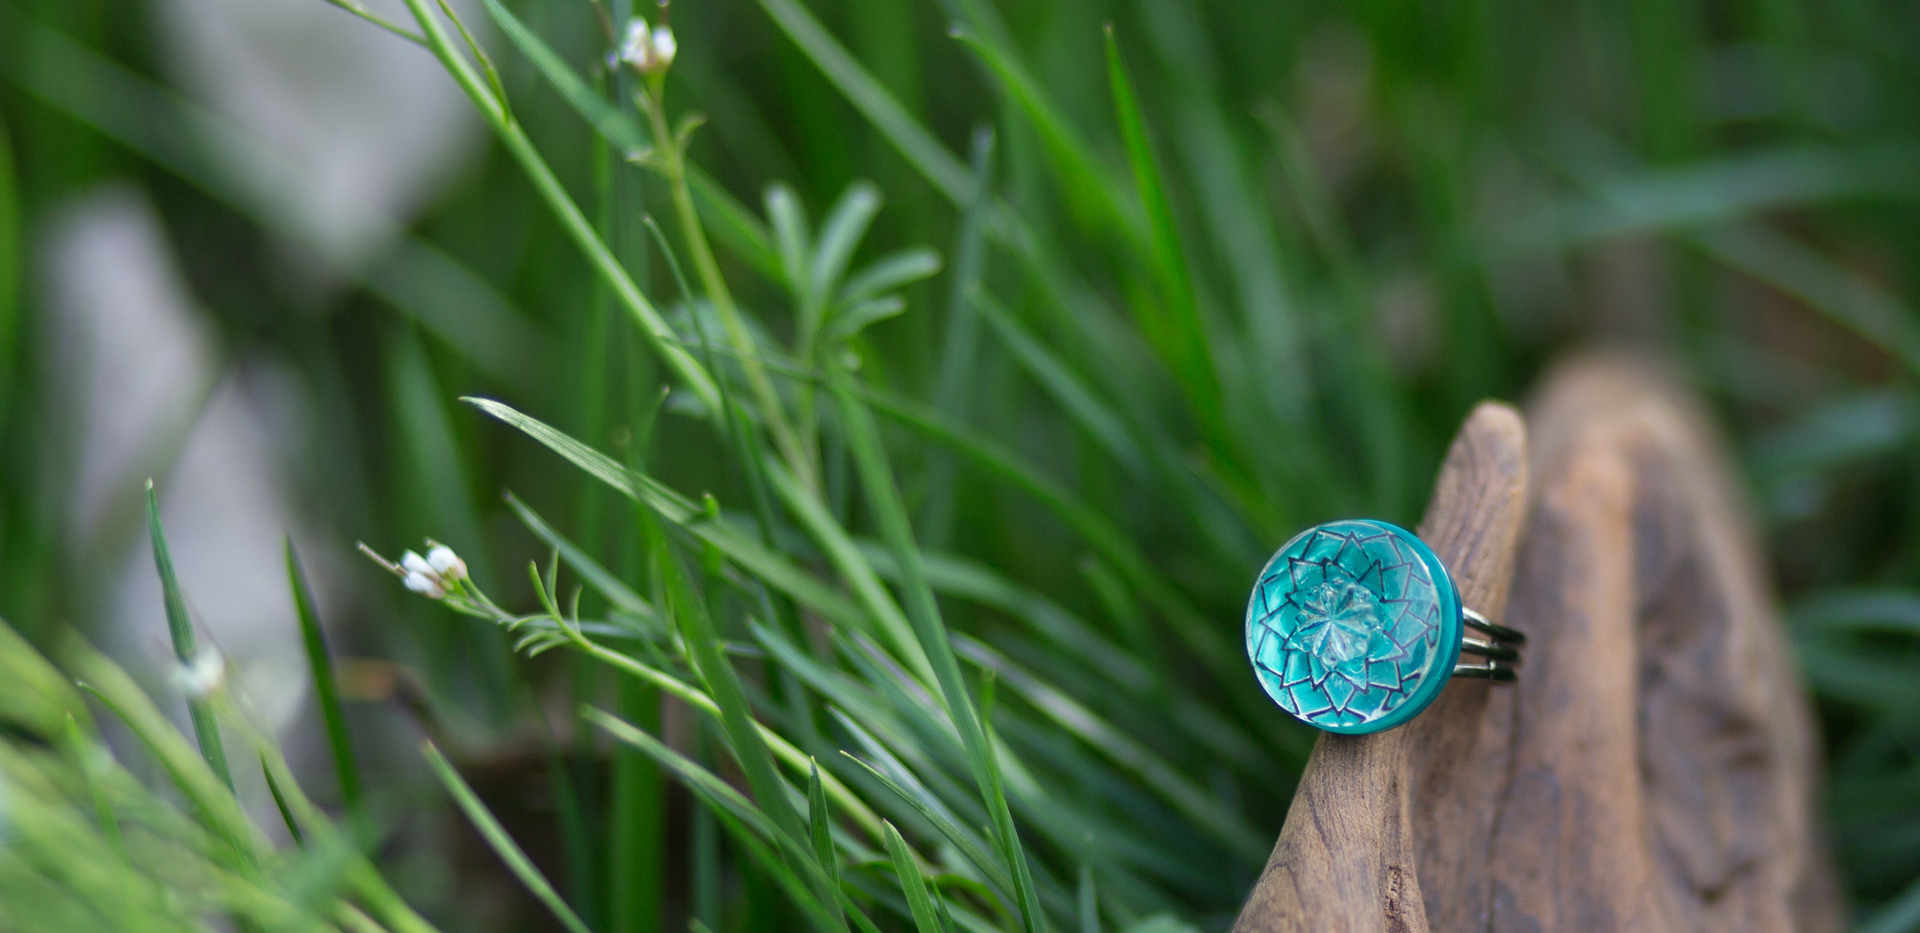 Button Ring in the grass